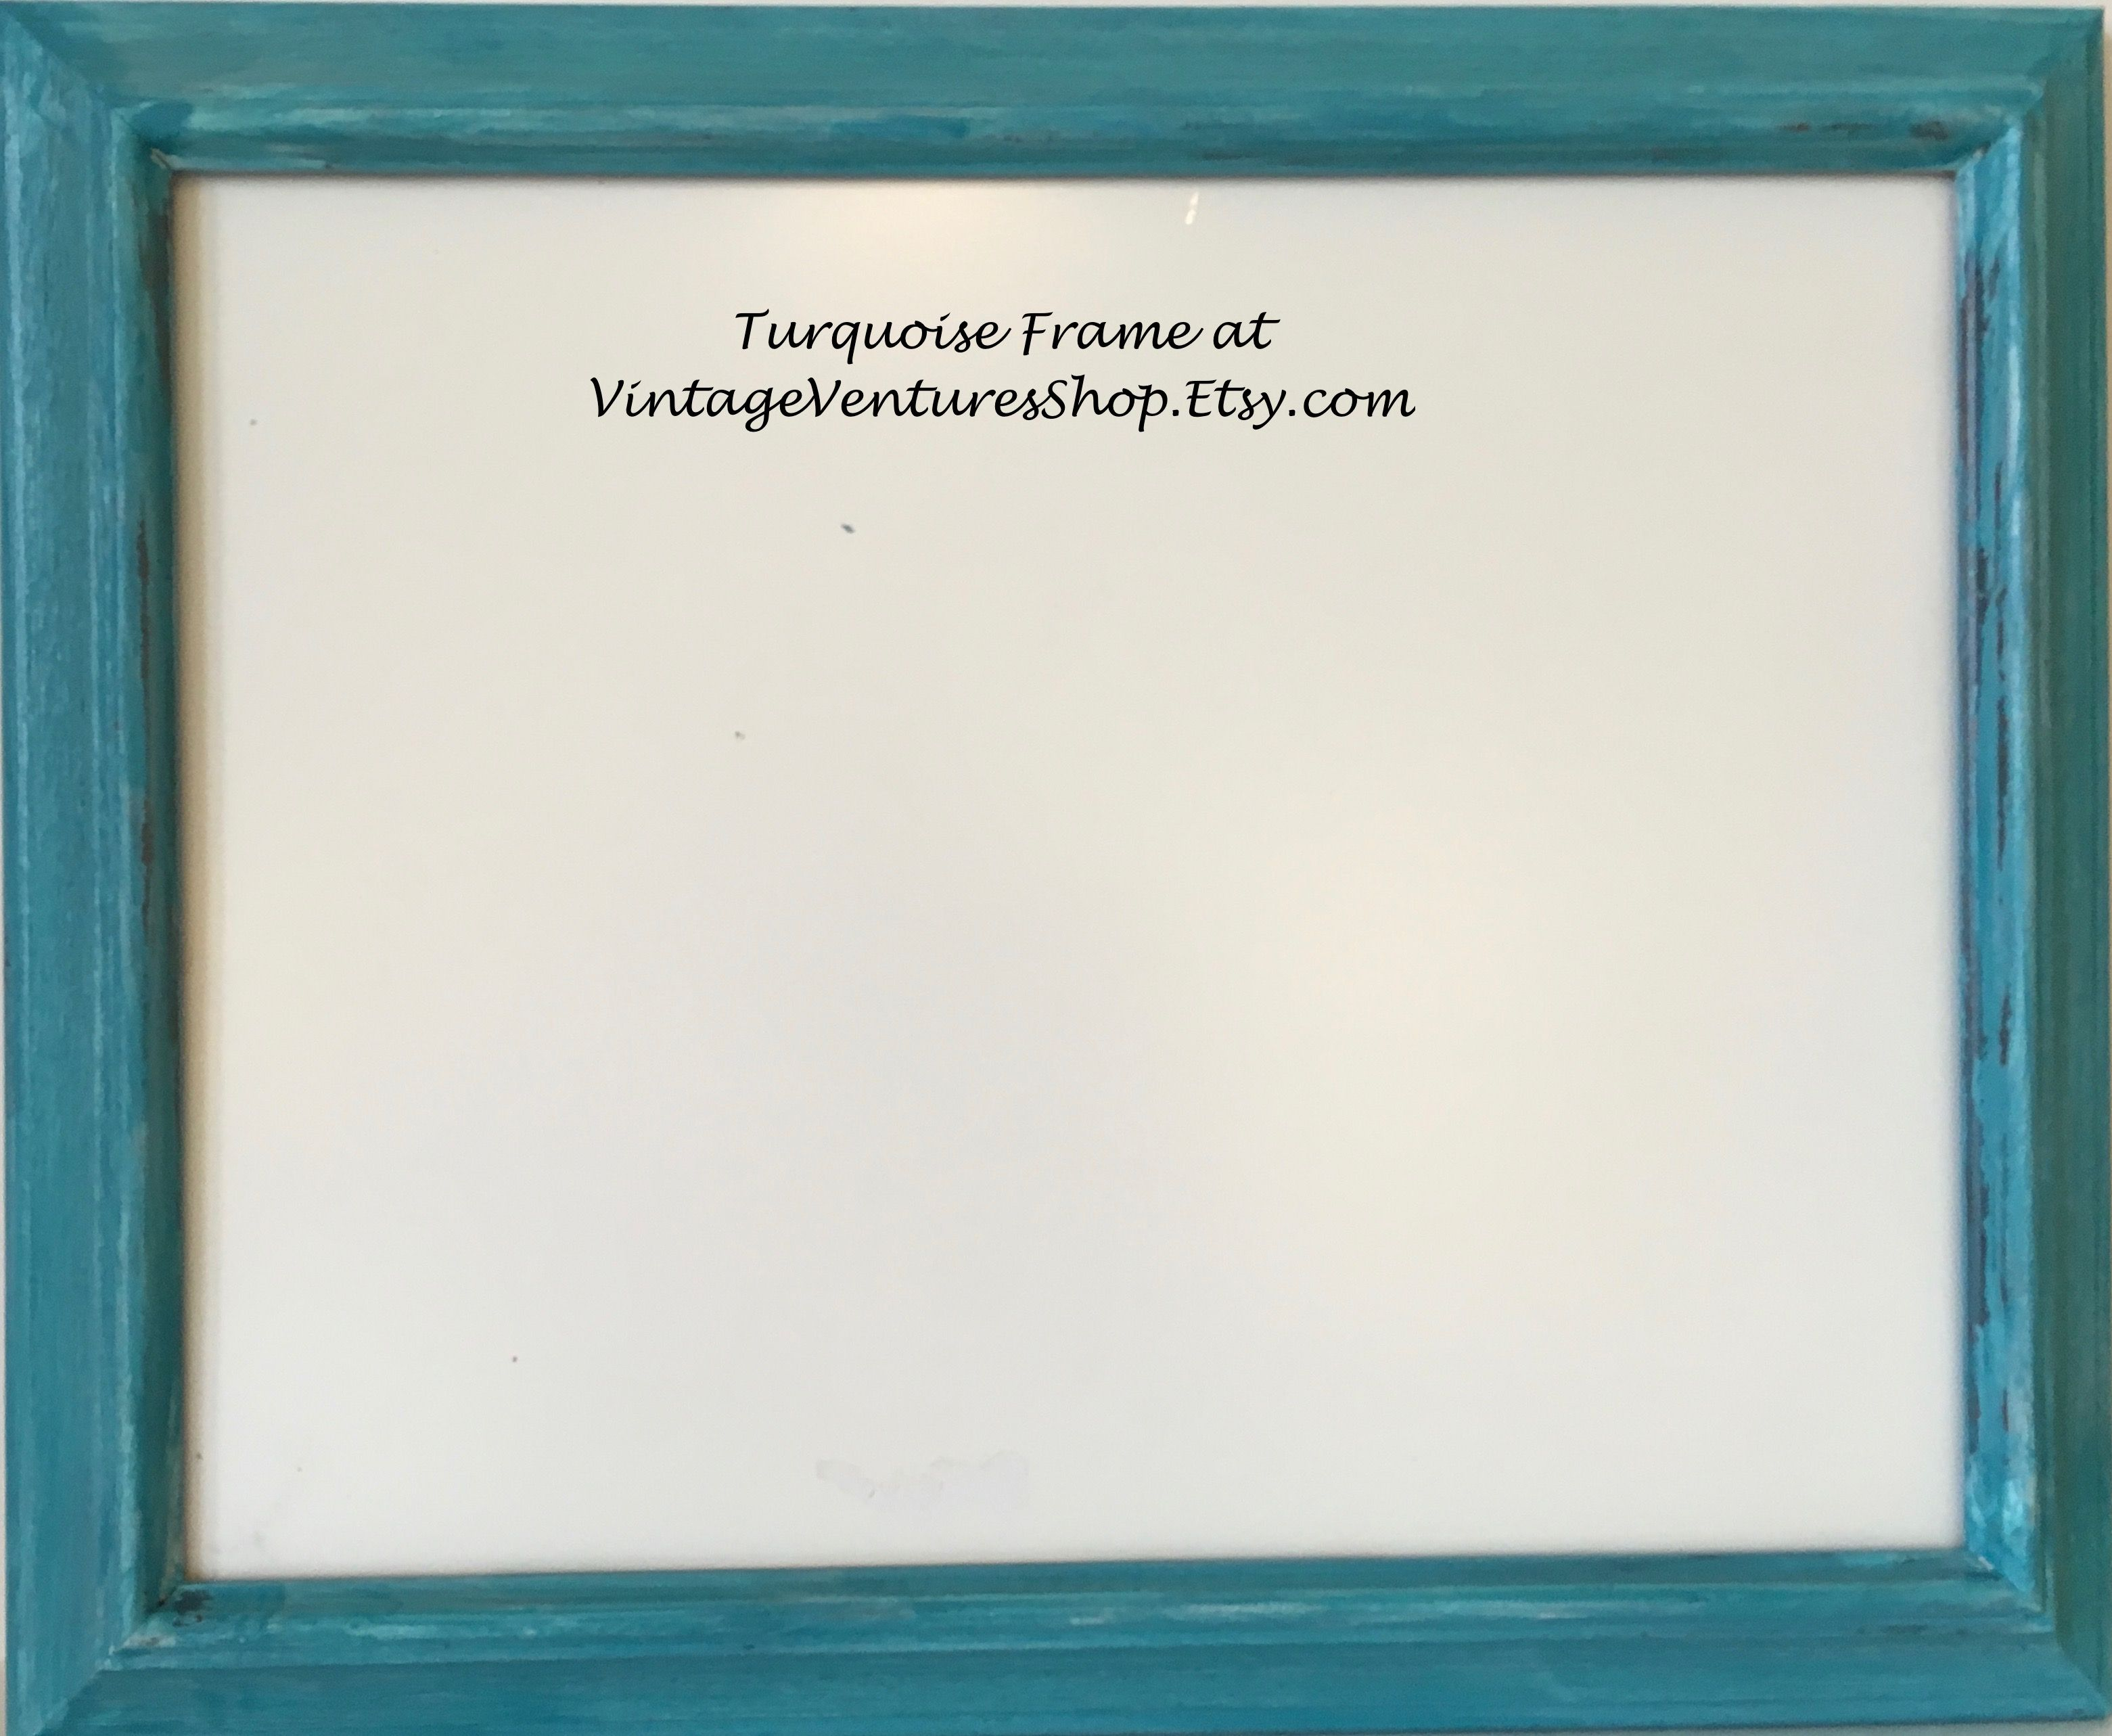 Vintage Frame up cycled - painted in trendy turquoise at ...